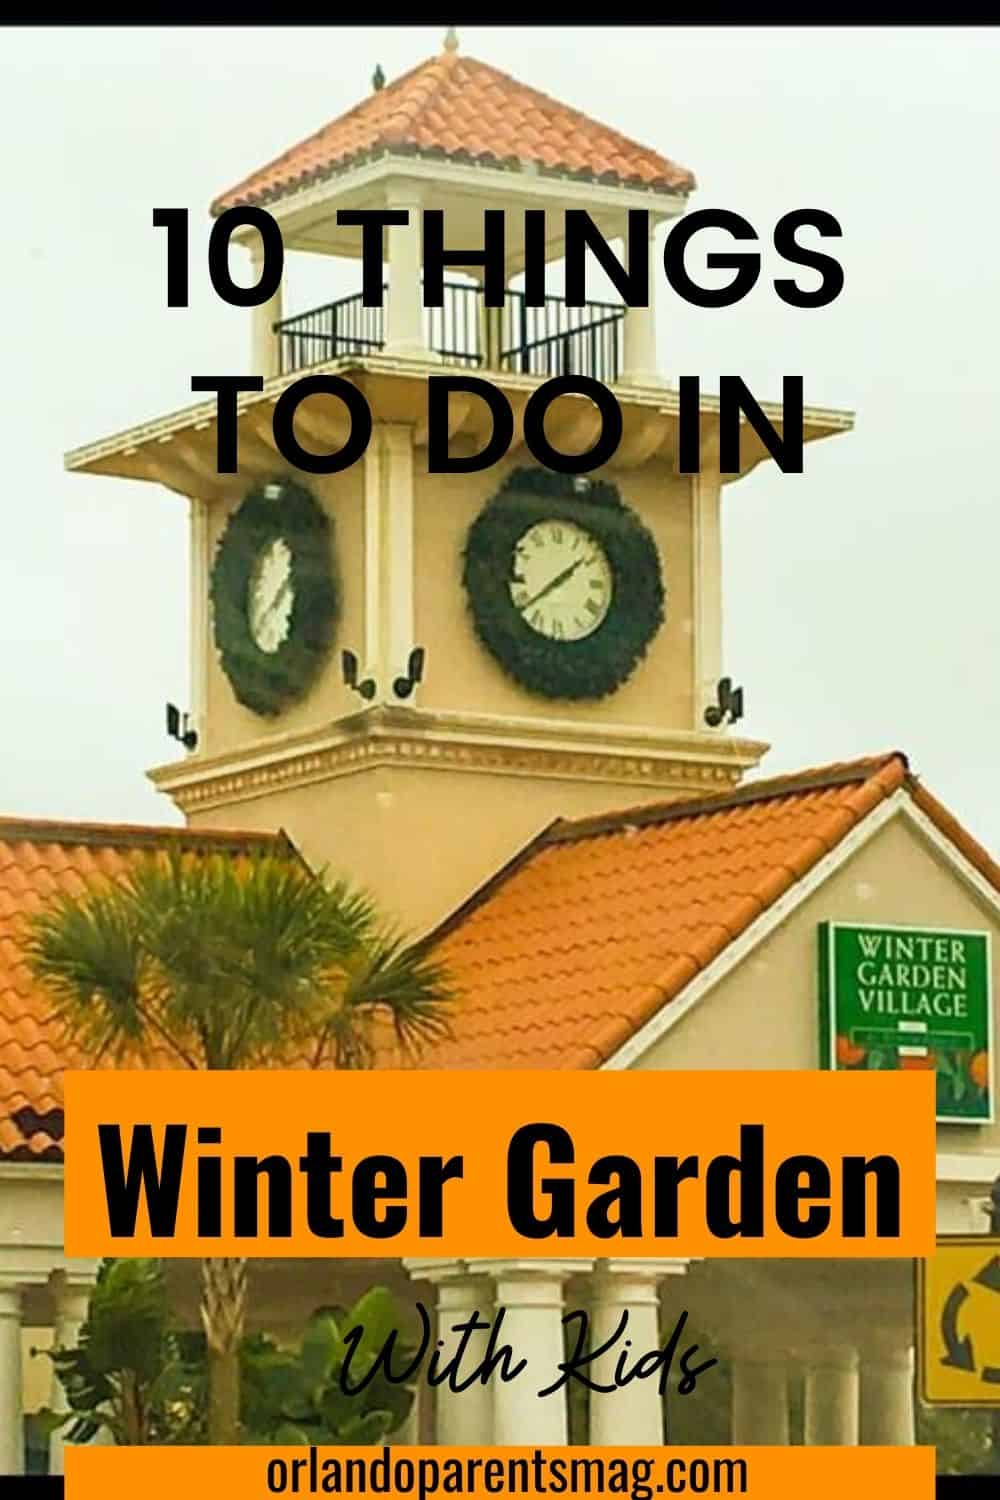 VISIT WINTER GARDEN WITH KIDS